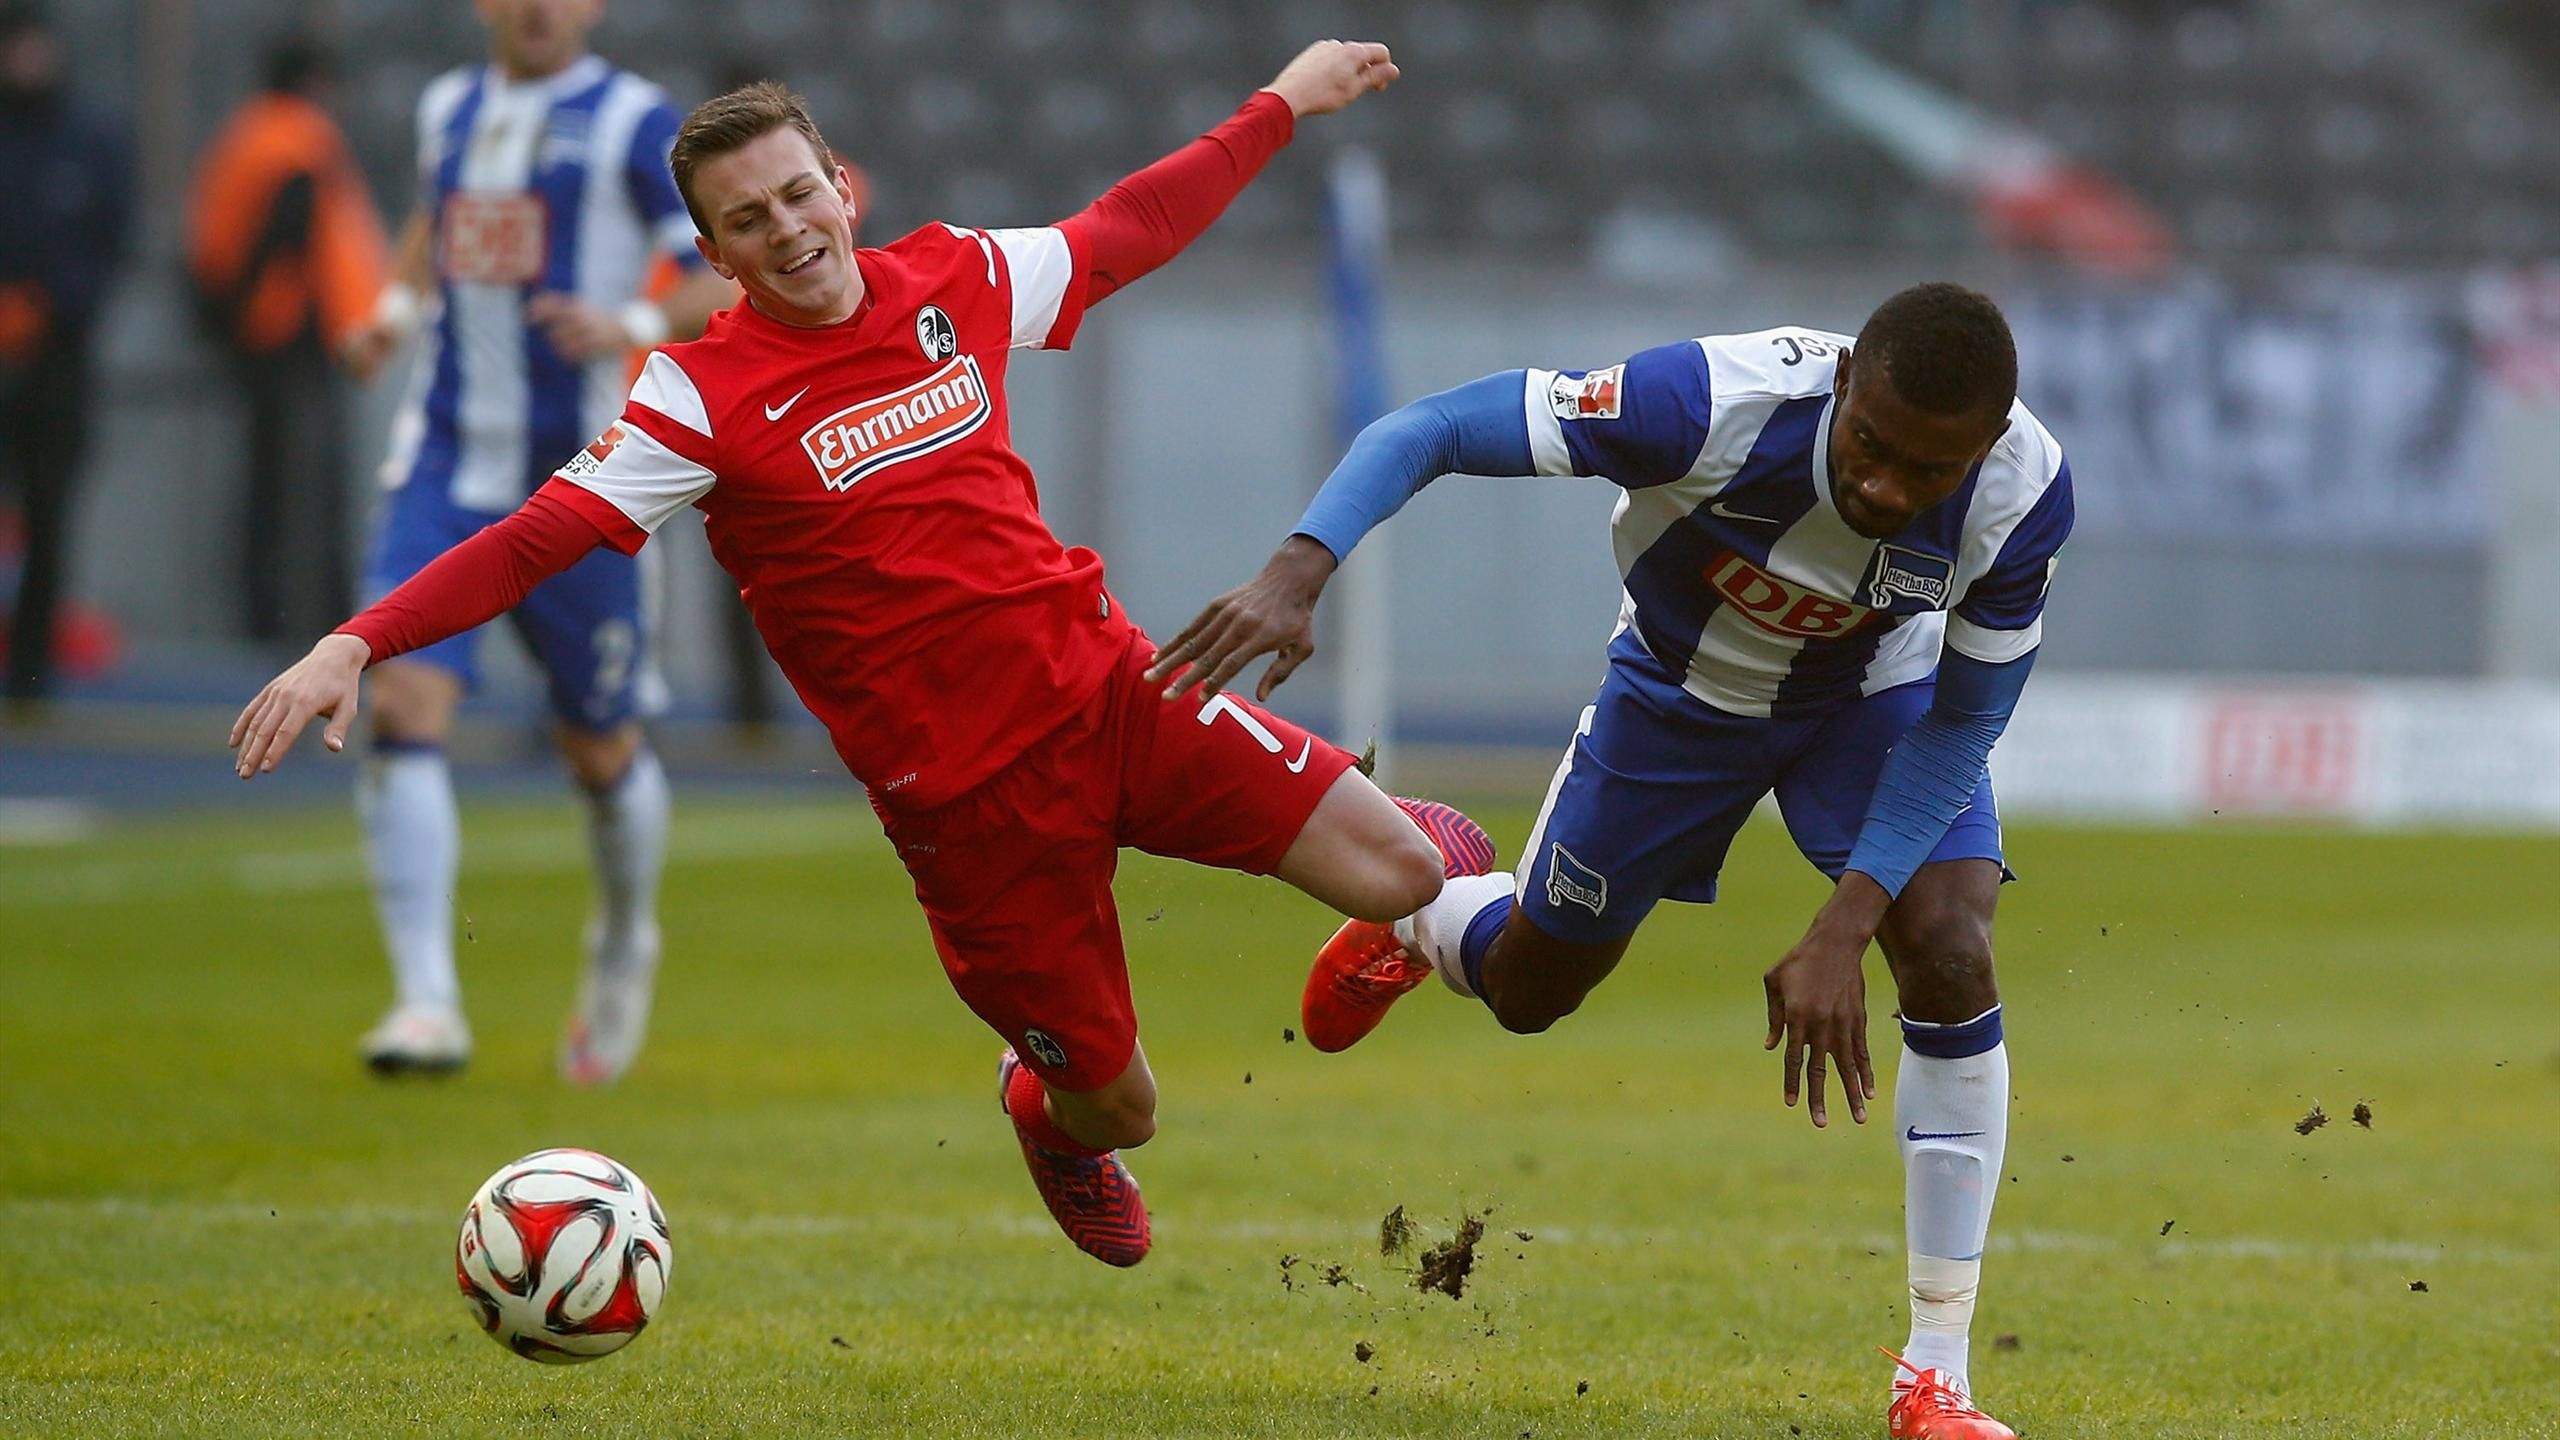 Video: Hertha BSC vs Freiburg